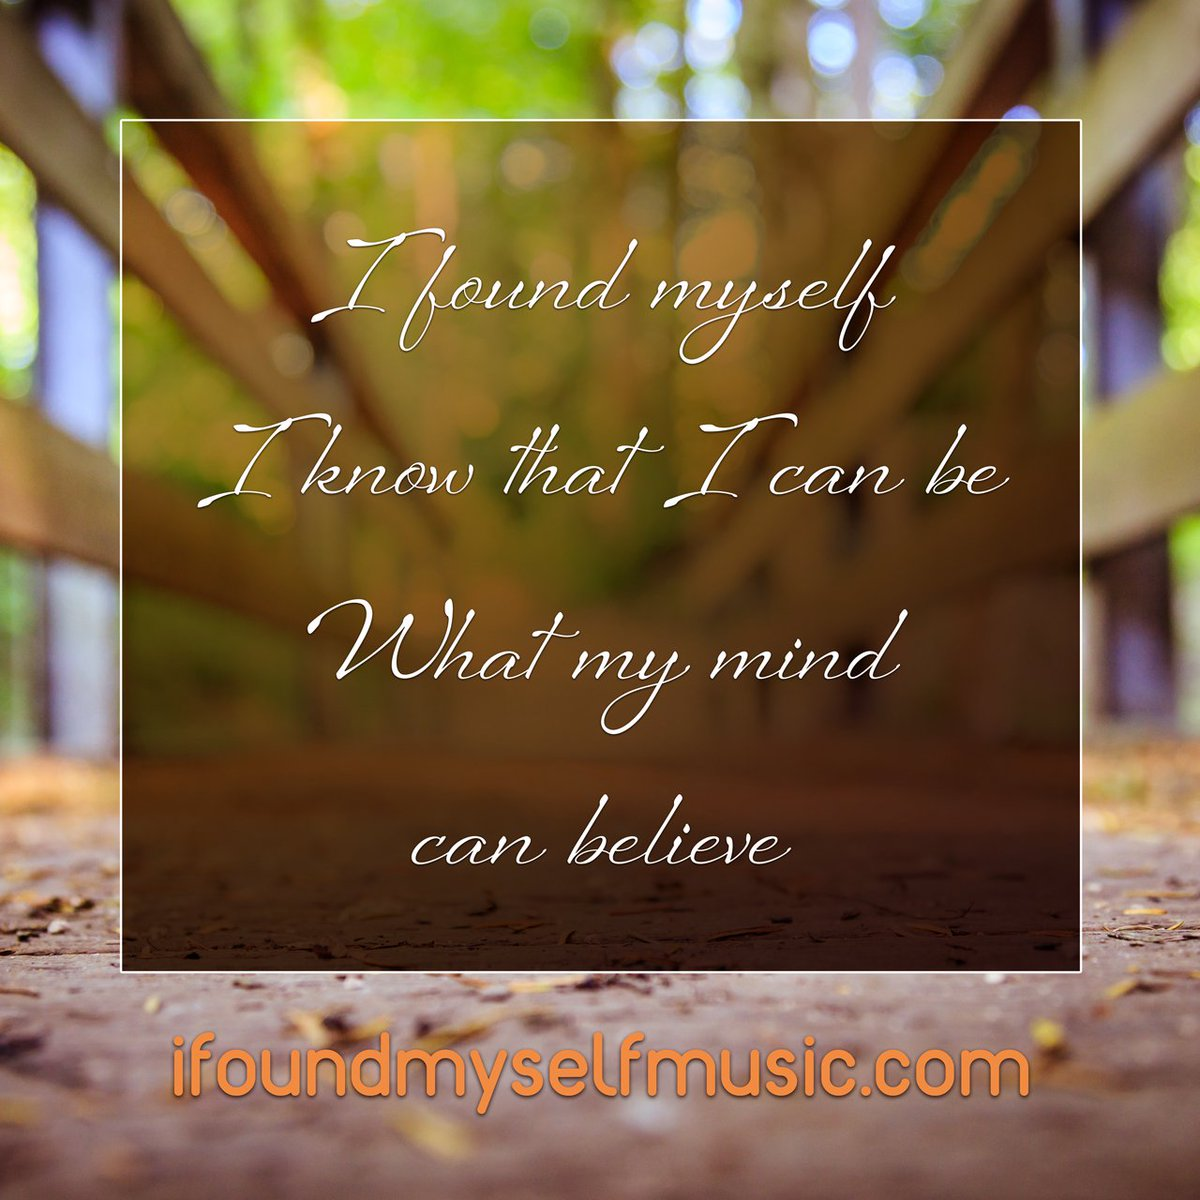 I found myself, I know that I can be What my mind can believe Now life is beautiful and new When I found myself, I found you  Stream / Download / Support :   #bodypositivity #chooseyourself #selfworth #mentalhealth #mentalhealthawareness